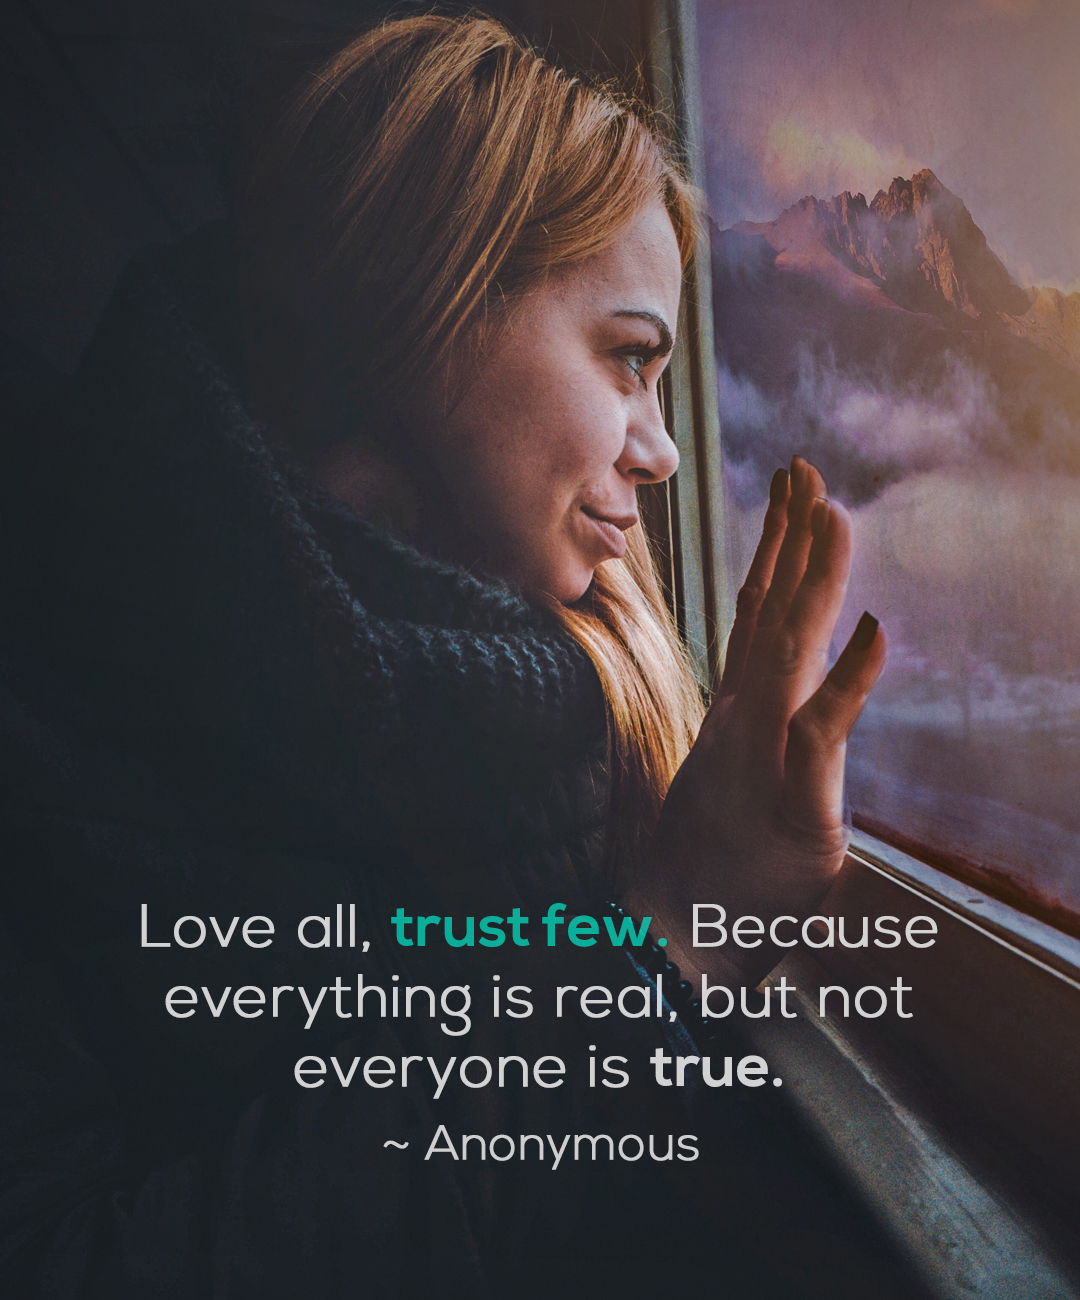 """Love all but trust few, because everything is real, but not everyone is true."" -Anonymous [1800×1300]"